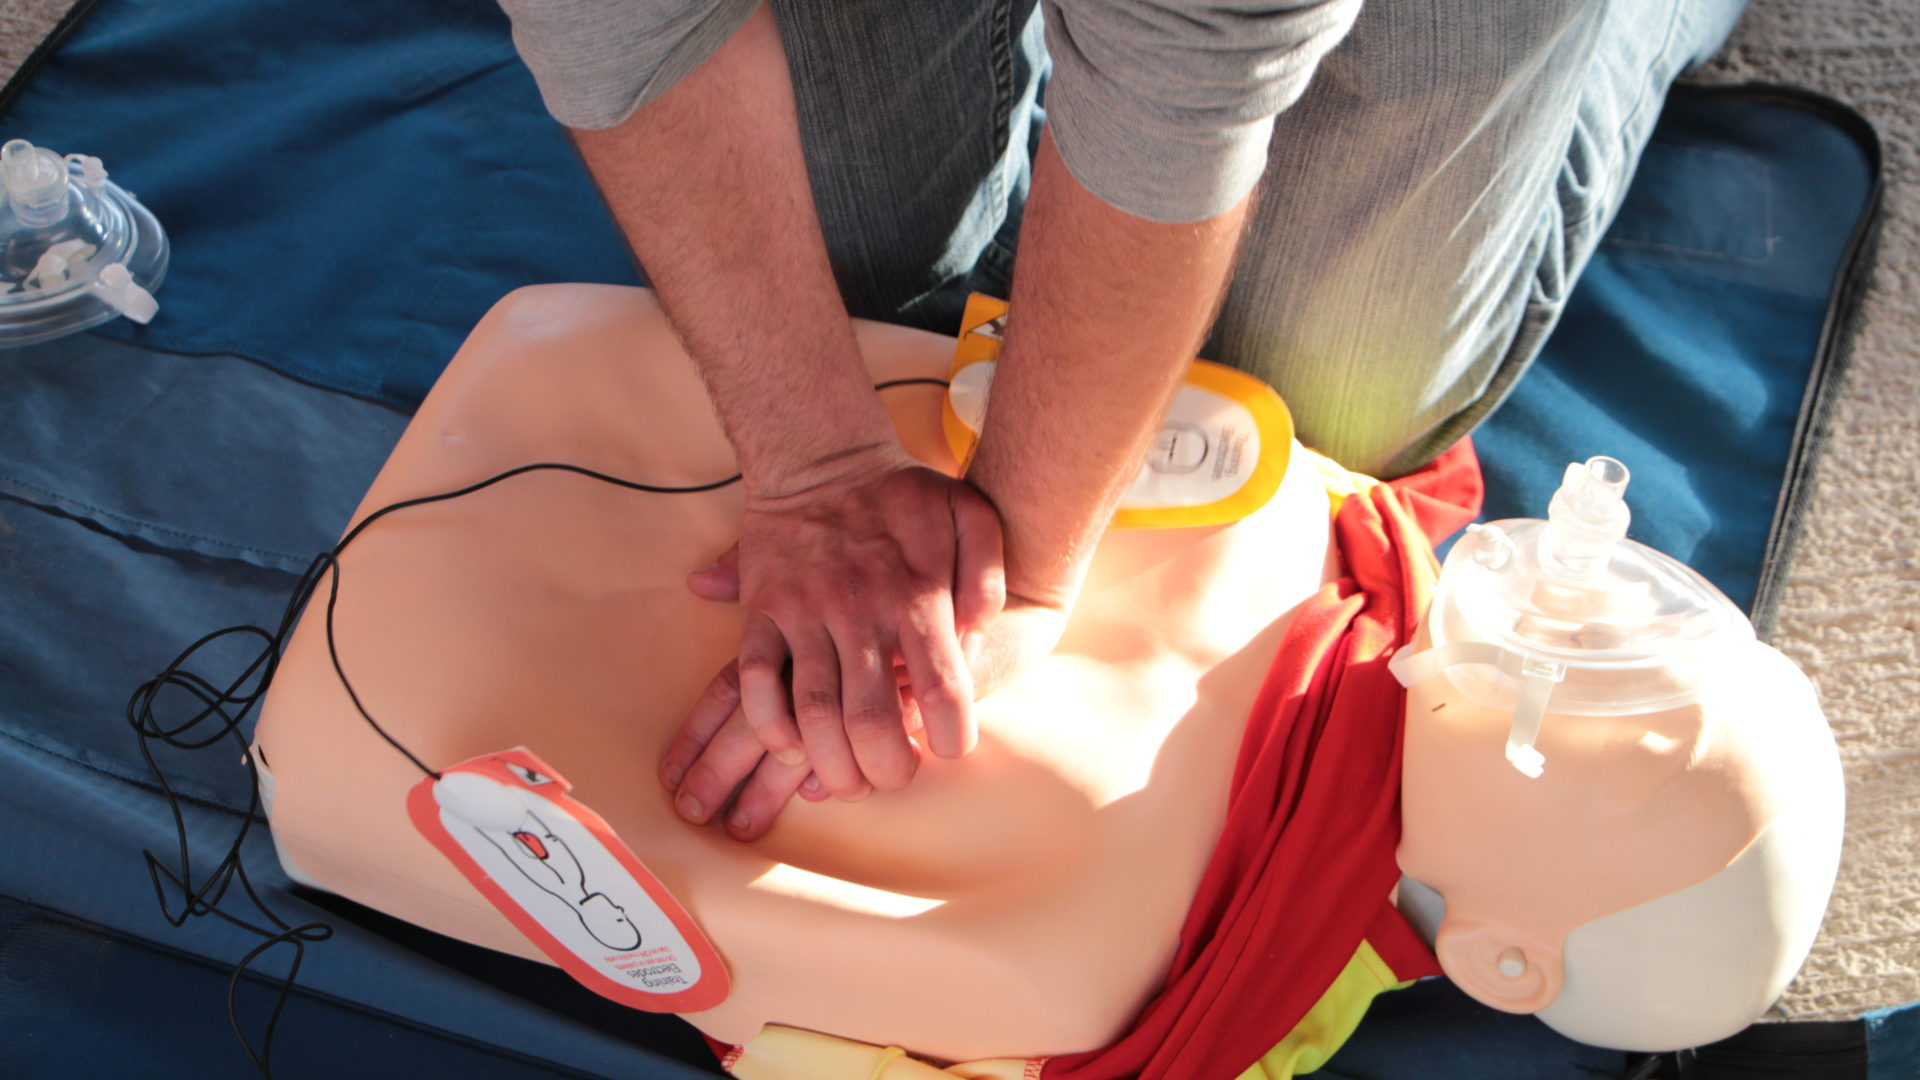 Person übt Herzmassage an Dummy aus